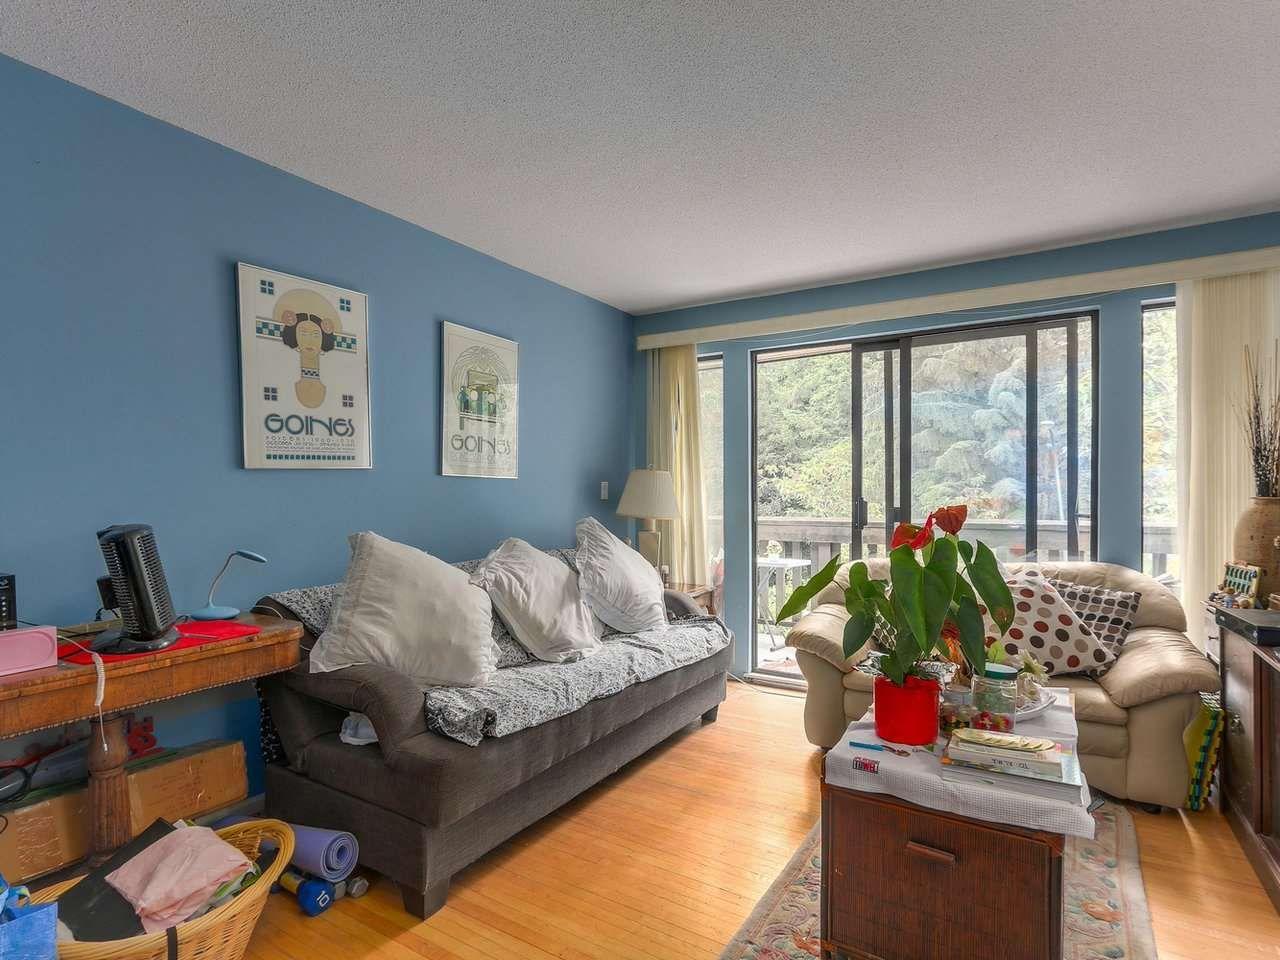 """Photo 4: Photos: 15 1811 PURCELL Way in North Vancouver: Lynnmour Condo for sale in """"LYNNMOUR SOUTH"""" : MLS®# R2276321"""